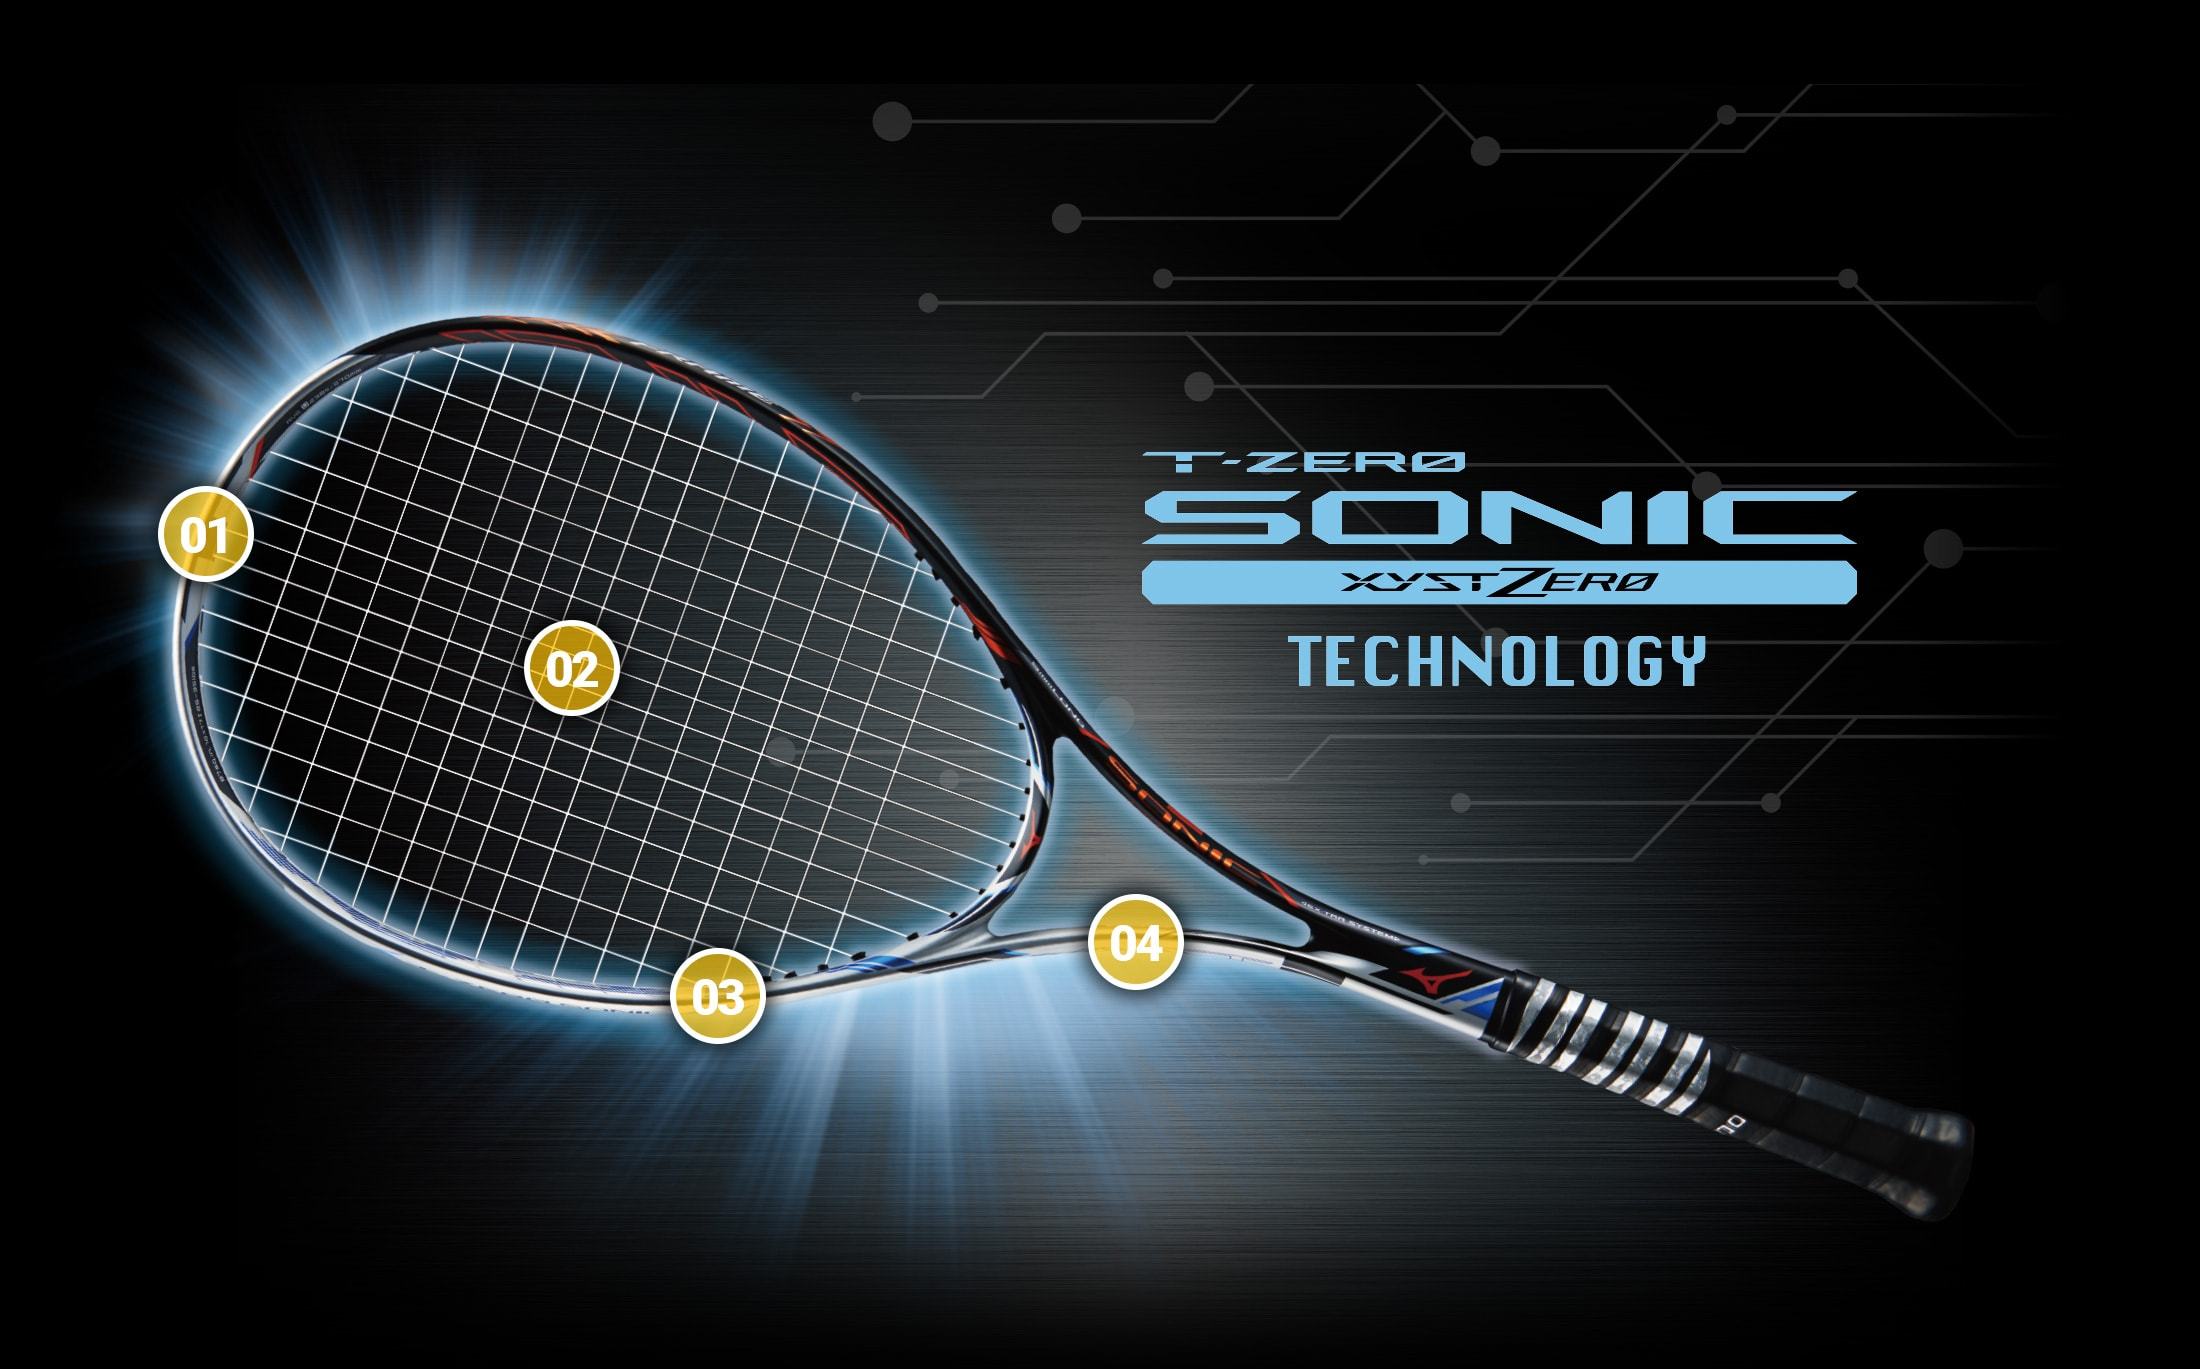 XYST T-ZERO SONIC TECHNOLOGY